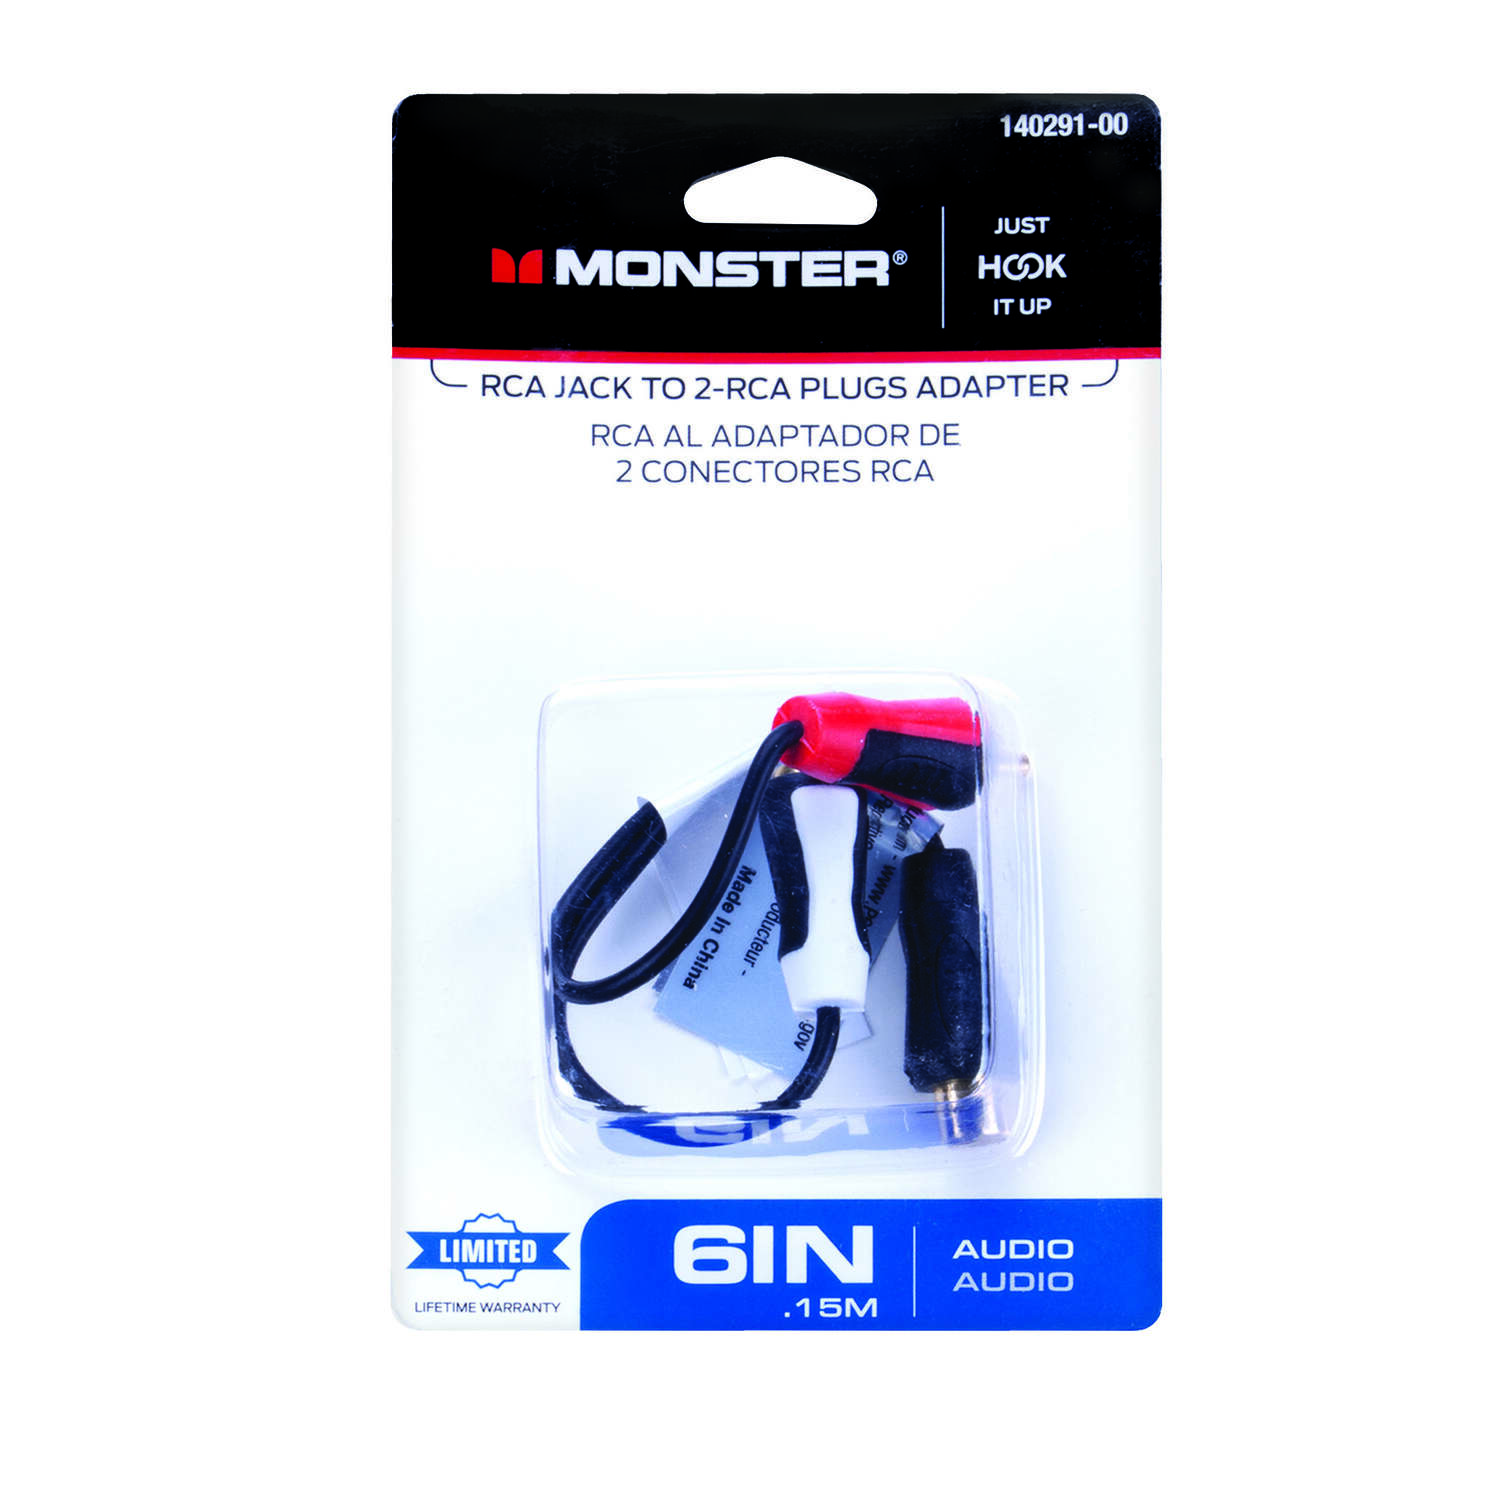 Monster Cable  Just Hook It Up  Adapter Cable  1 each